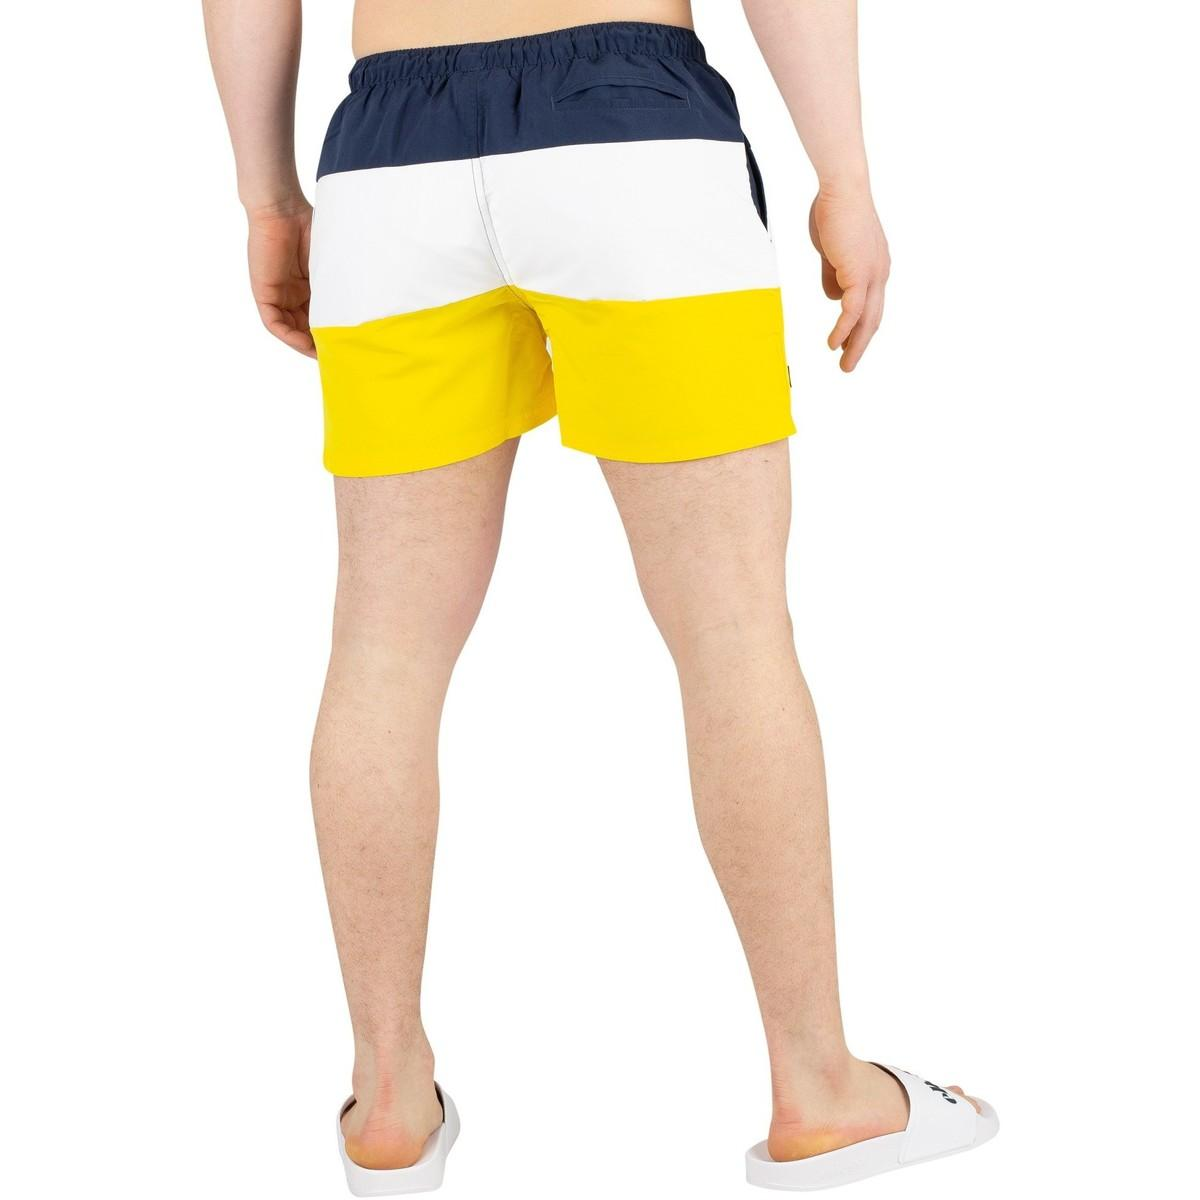 4cdc93298e Ellesse - Men's Cielo Swimshorts, Yellow Men's Shorts In Yellow for Men -  Lyst. View fullscreen